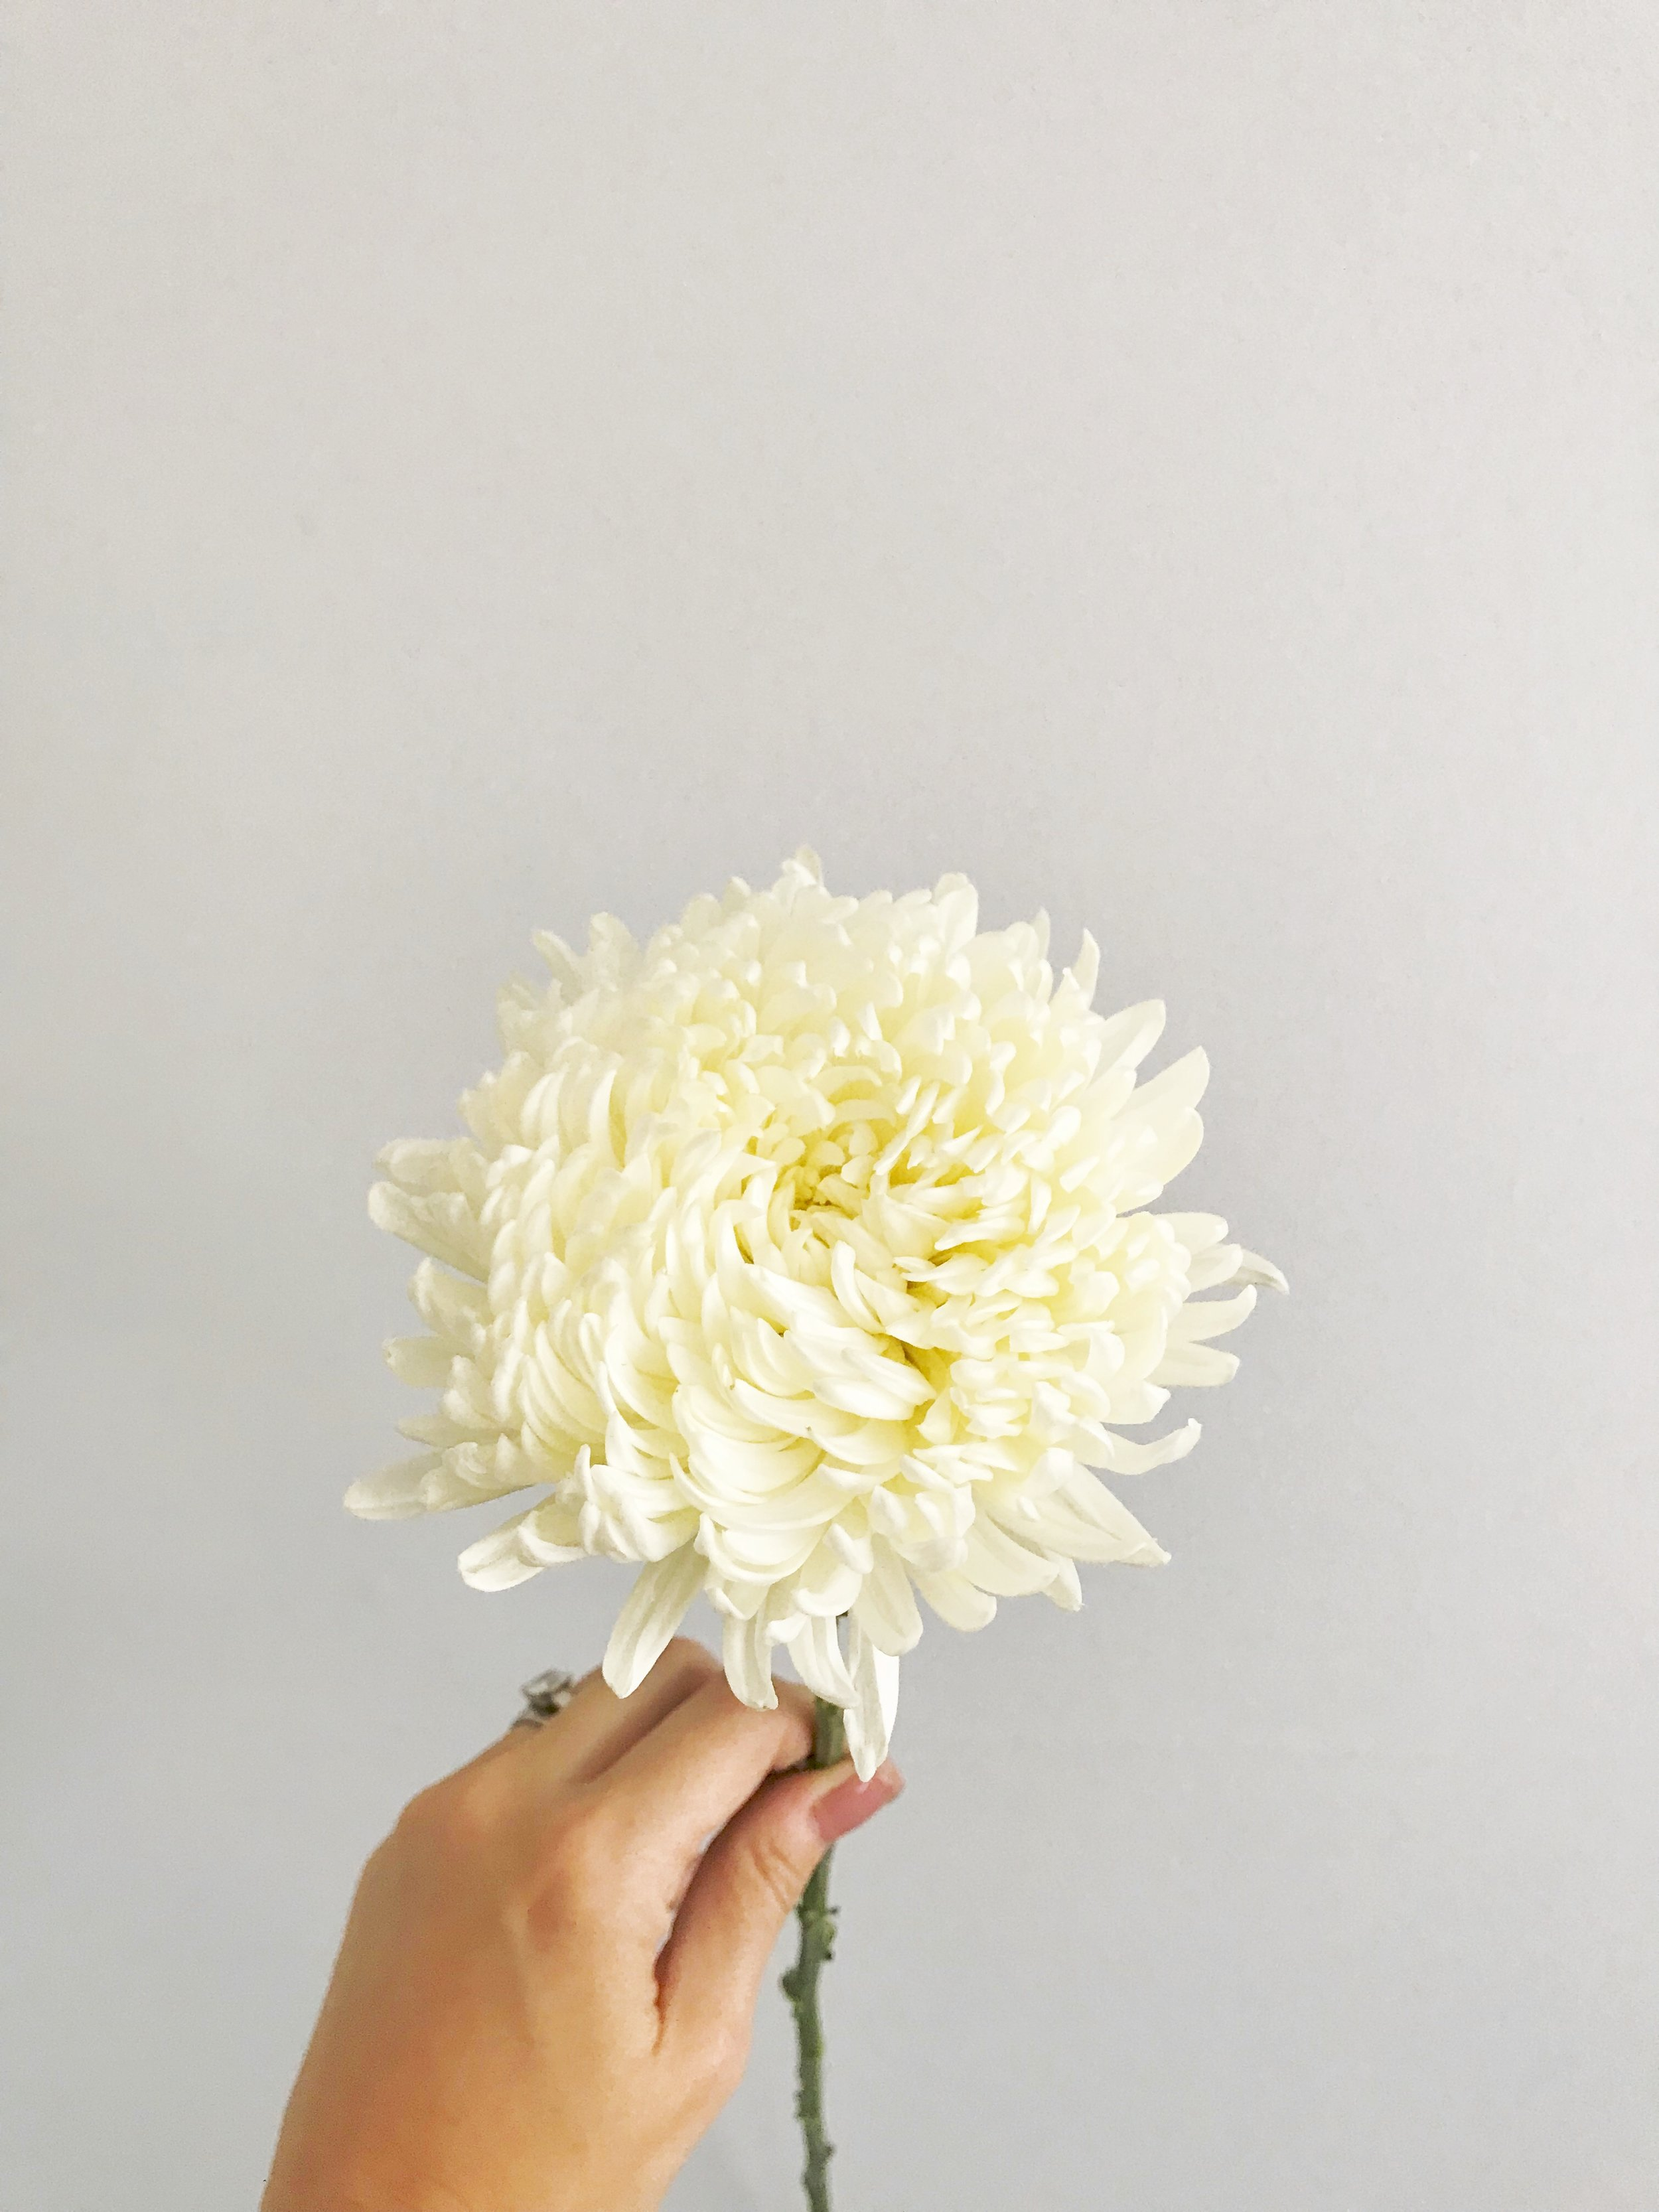 It's no secret that mums are a popular choice for fall gardens, but this oversized, fluffy variety is perfect for bridal bouquets and arrangements! They open up big and beautiful, and have so many tiny petals they they are just downright fluffy! The white ones are a beautiful addition to bouquets!